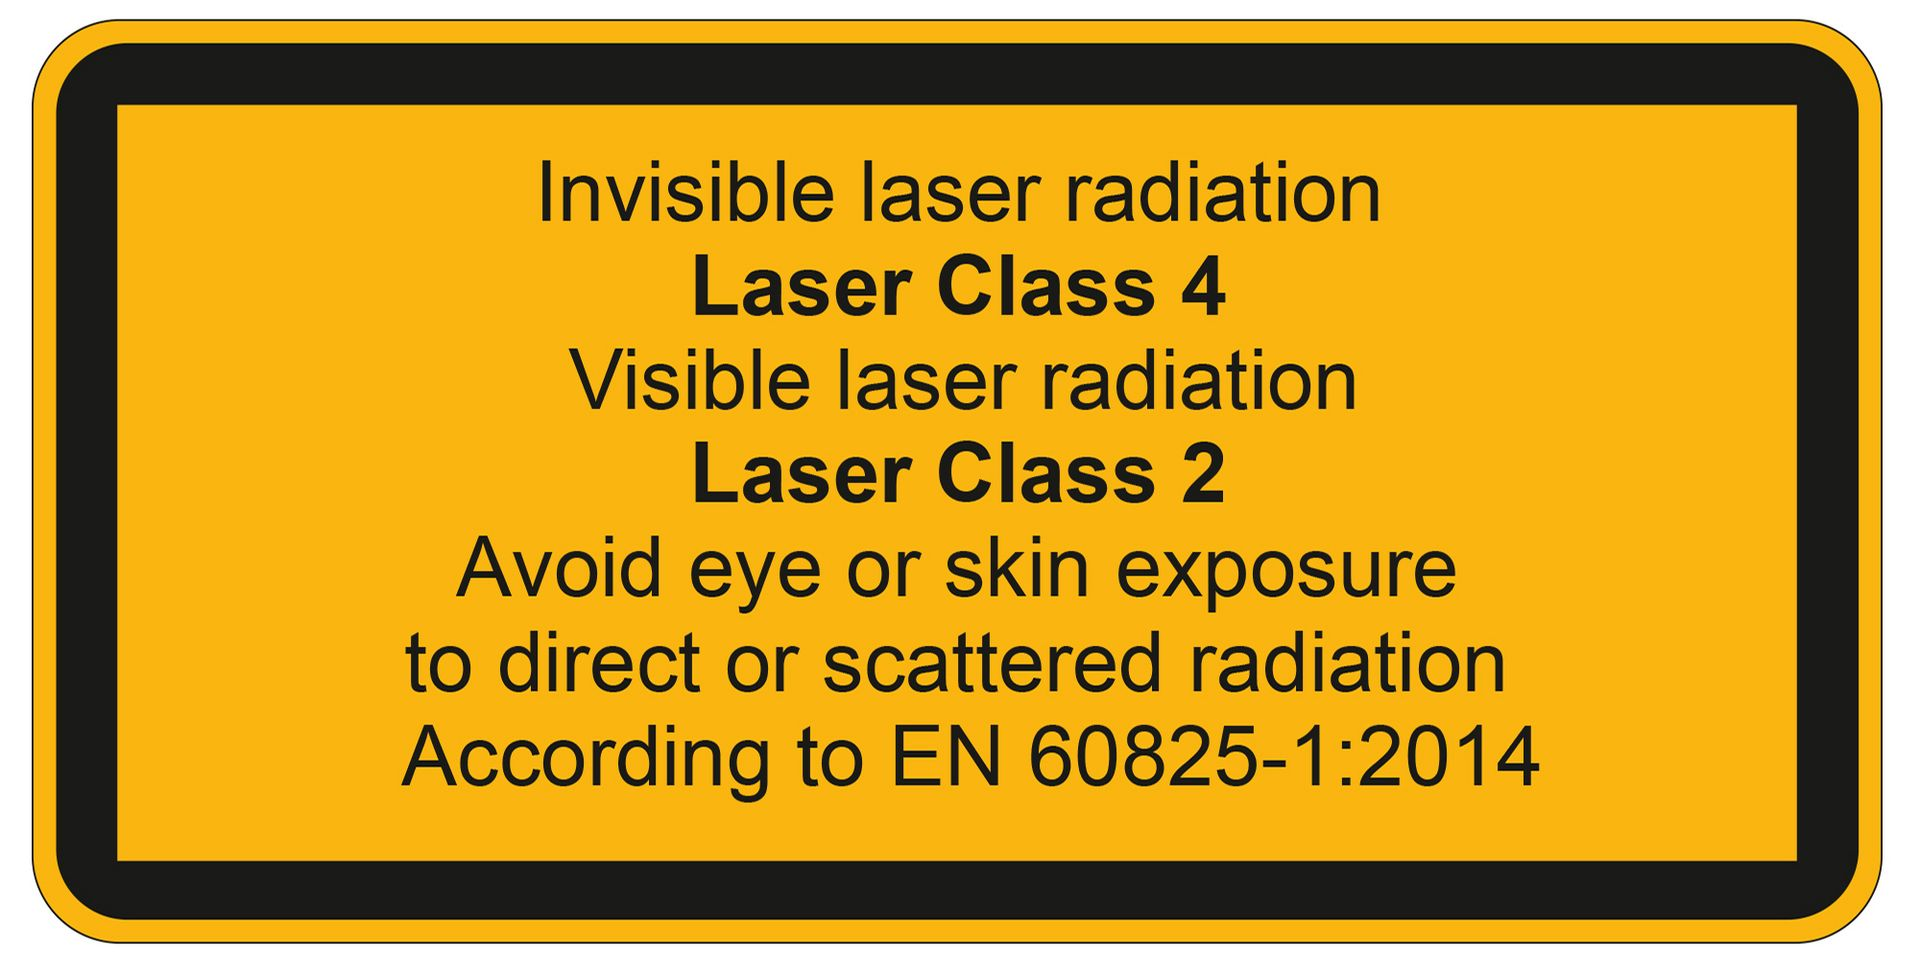 Laser technology - Laser Advice 02 - REA JET